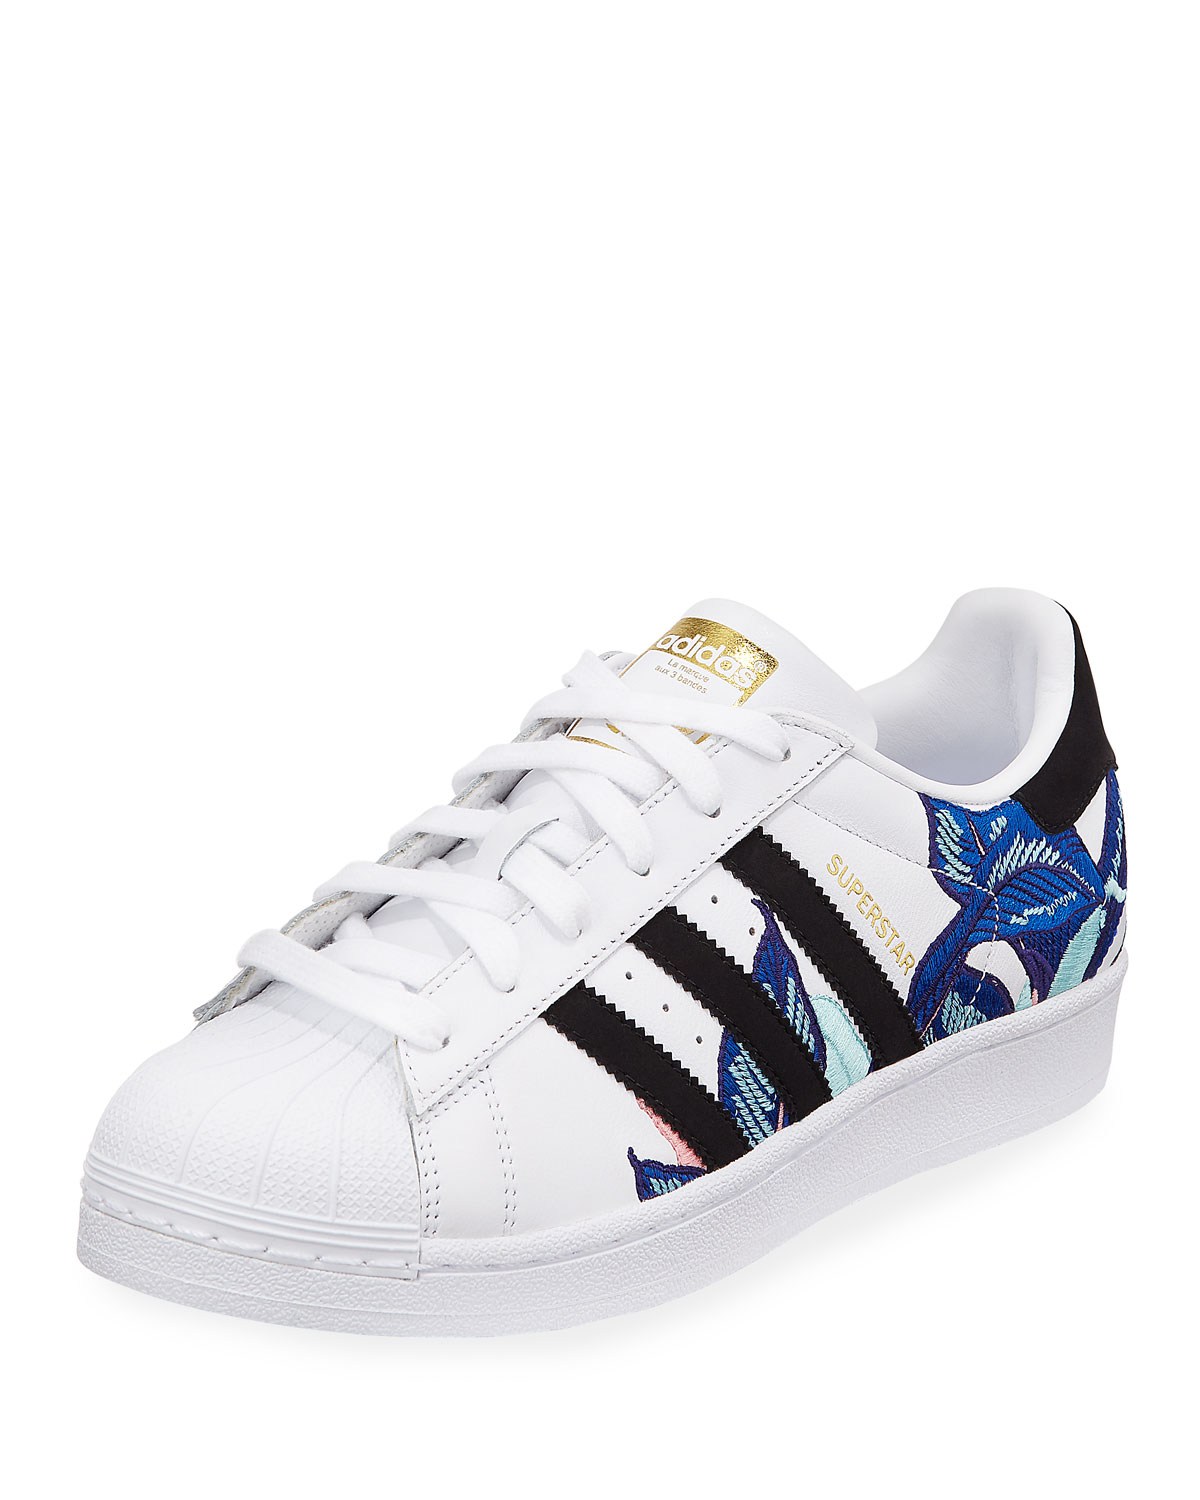 1f18ddfff1dfc Adidas Superstar Embroidered Sneakers